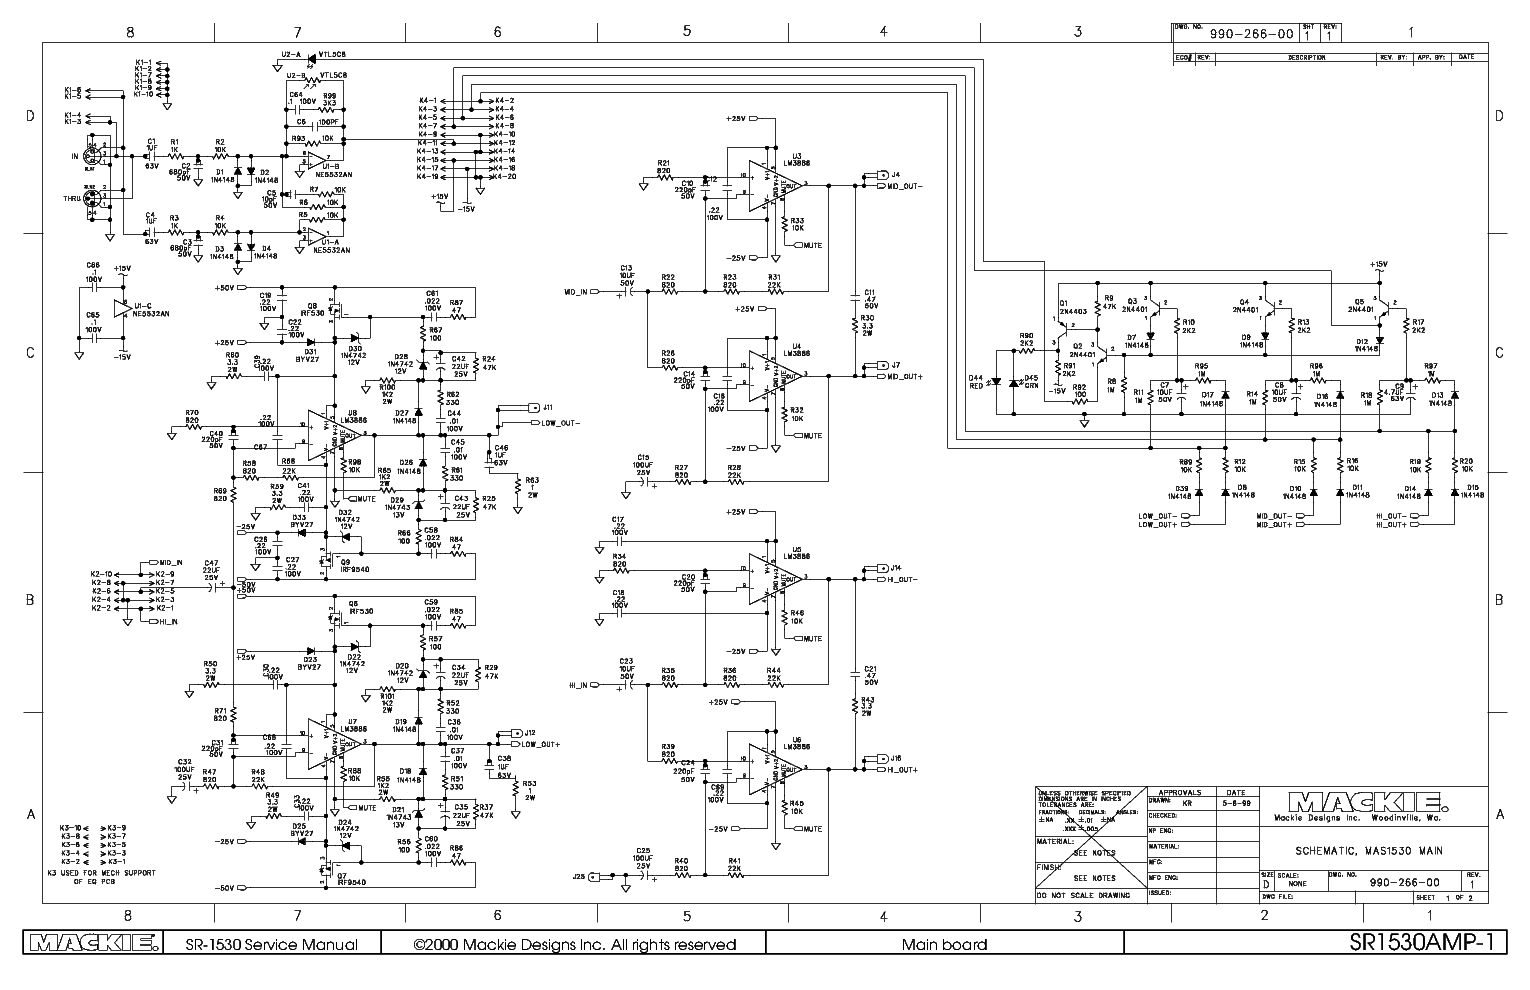 mackie sr1530 active speaker service manual free schematics eeprom repair info for